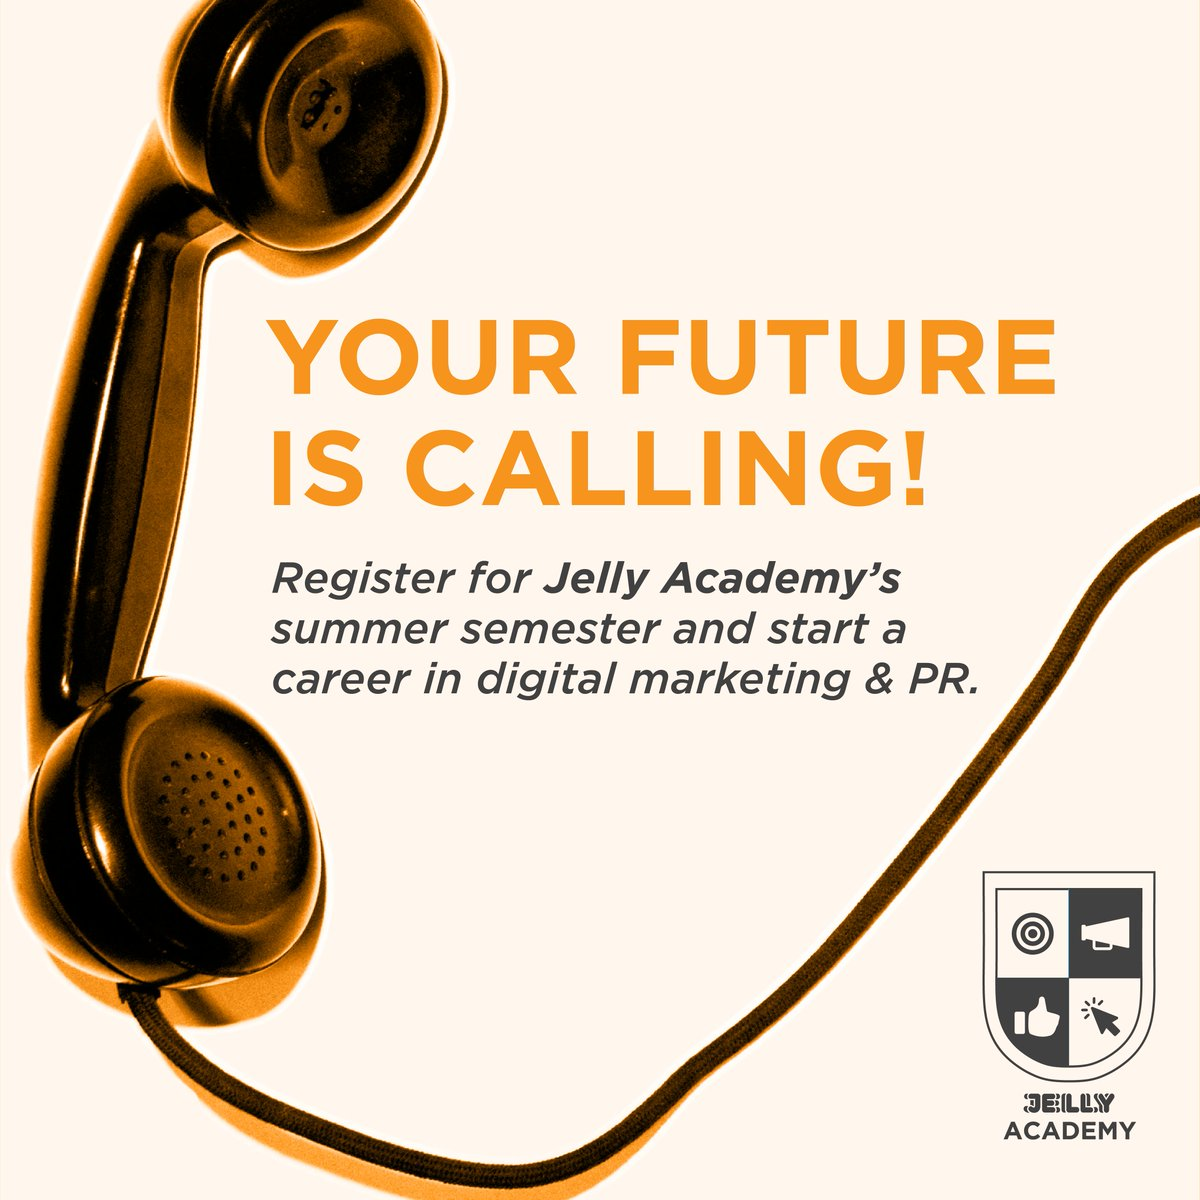 RT @dariankovacs: Pick up the phone - digital marketing opportunities are calling!   Our summer semester of @jellyacademy is coming up soon. Don't let this call go to voicemail - sign up here: https://t.co/KXiSQ9Olum  #JellyAcademy #marketing #education https://t.co/GLUXDan1me